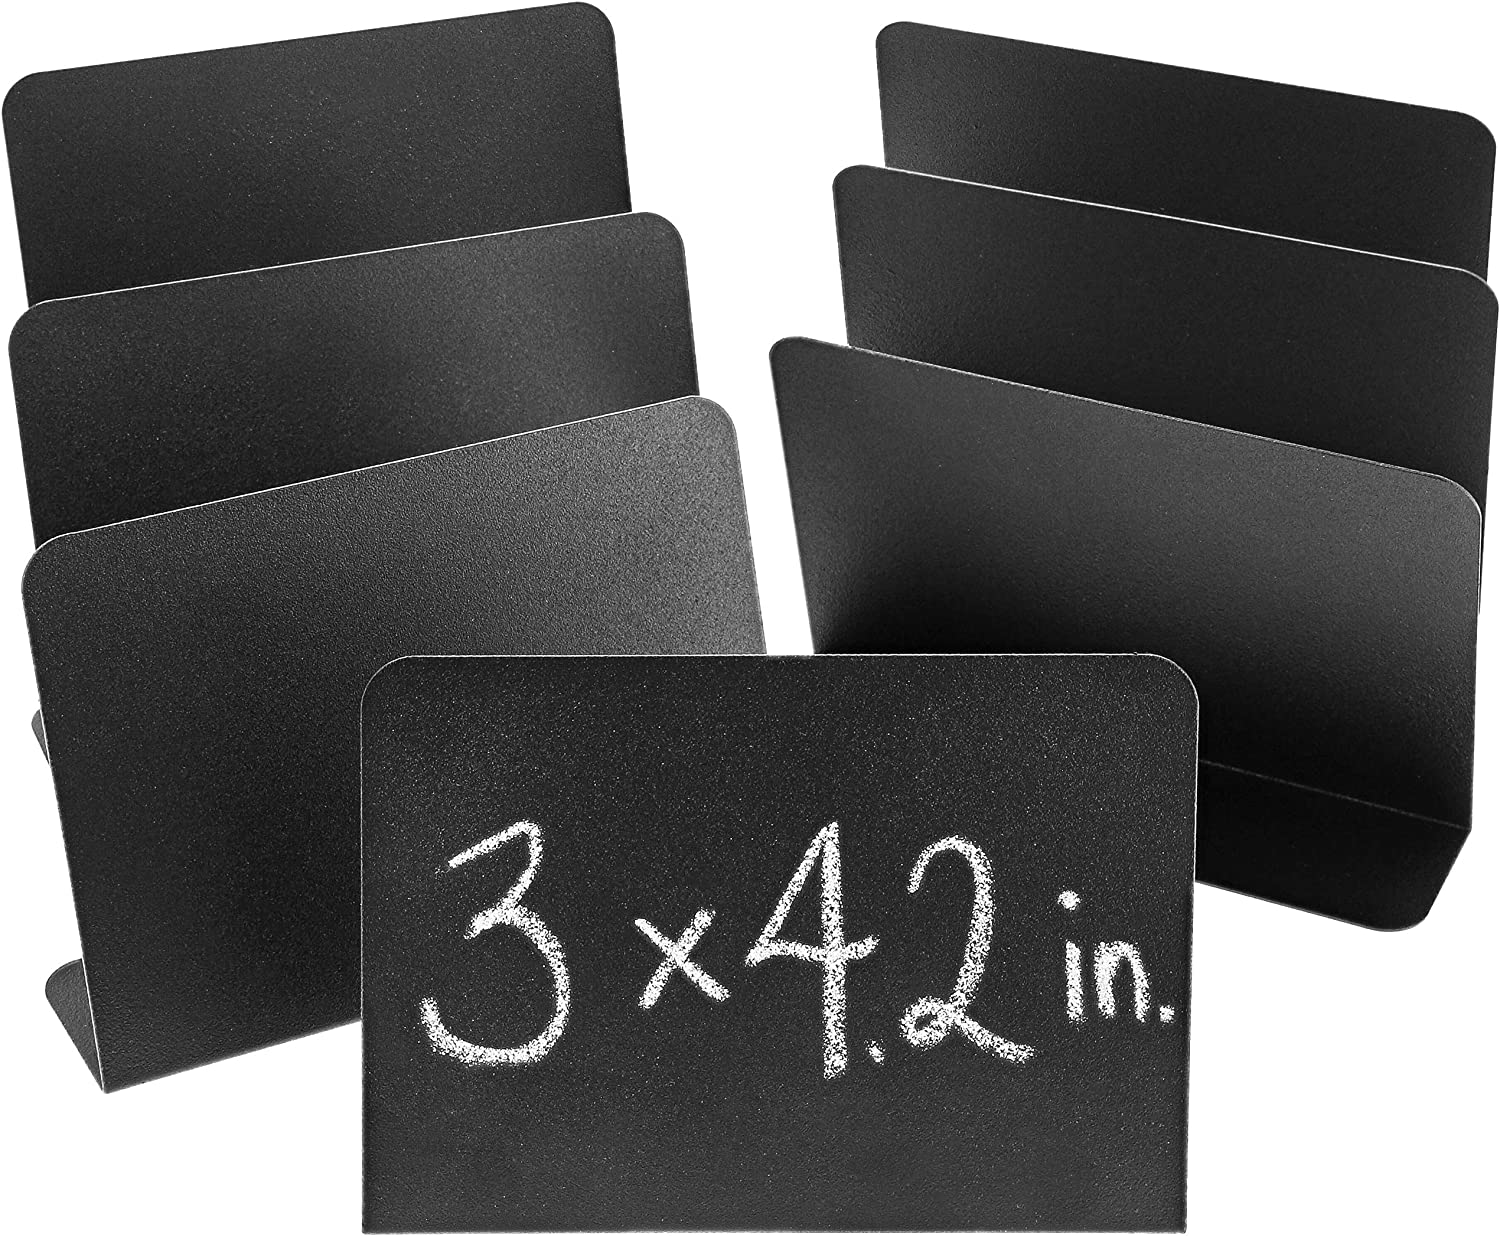 Juvale 8-Pack Mini Metal Chalkboard Stands - Erasable Signs for Tables, Weddings, and Parties, 3 x 4 Inches